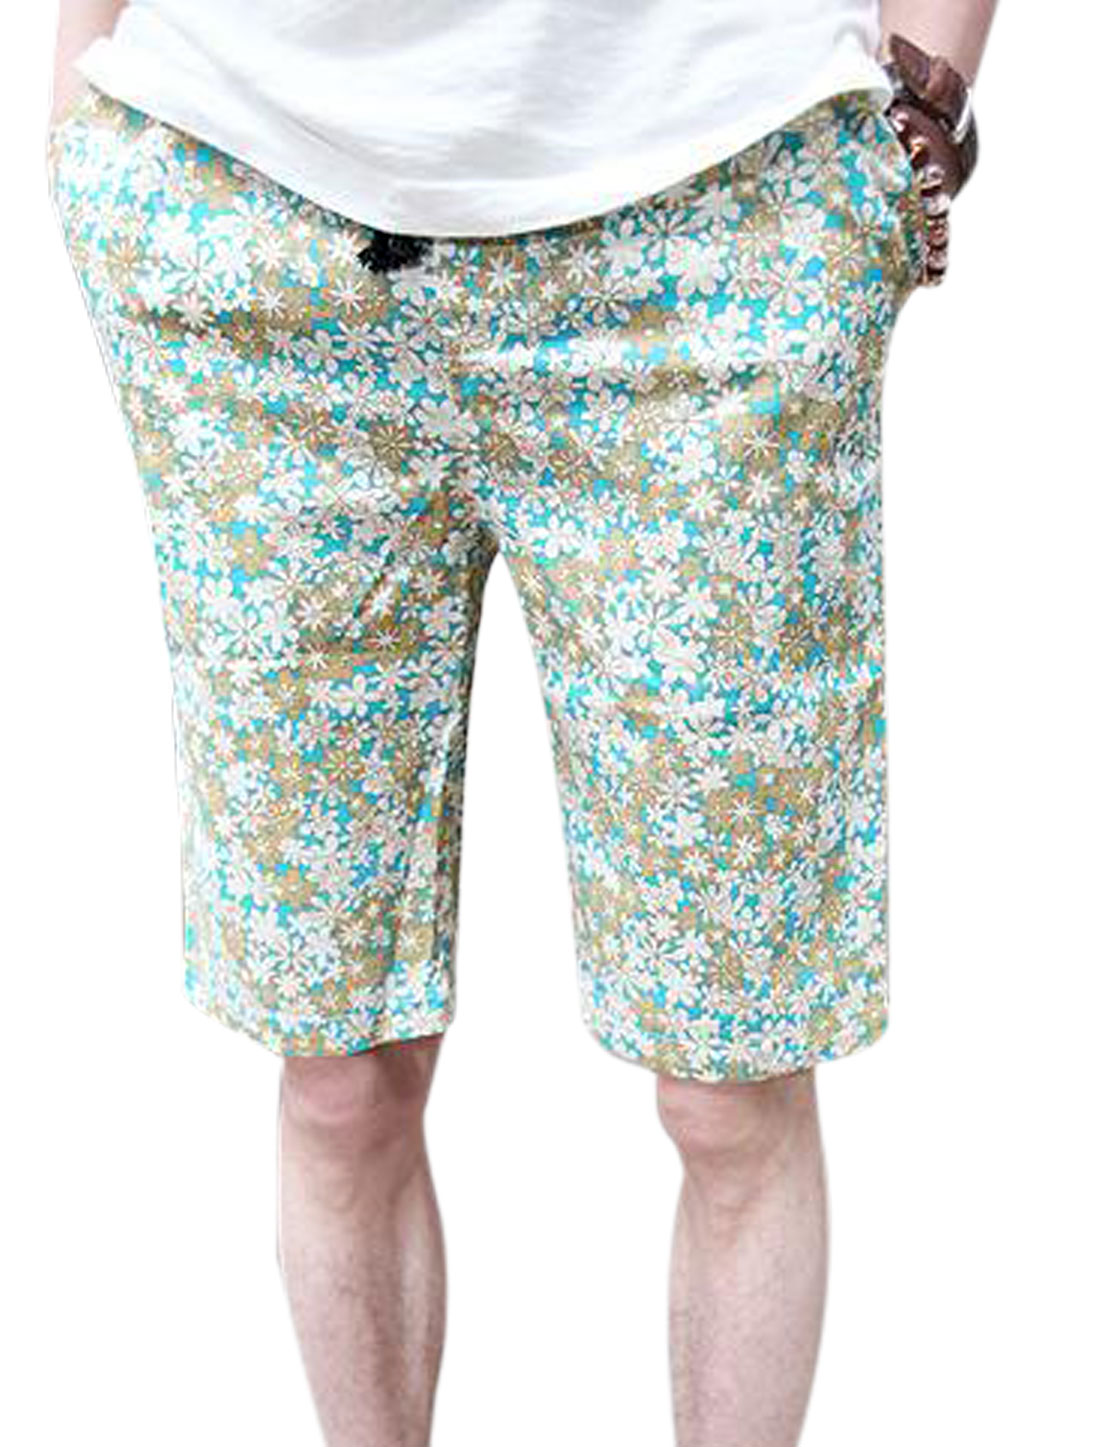 Men Stretchy Drawstring Waist Floral Prints Summer Shorts Turquoise W28